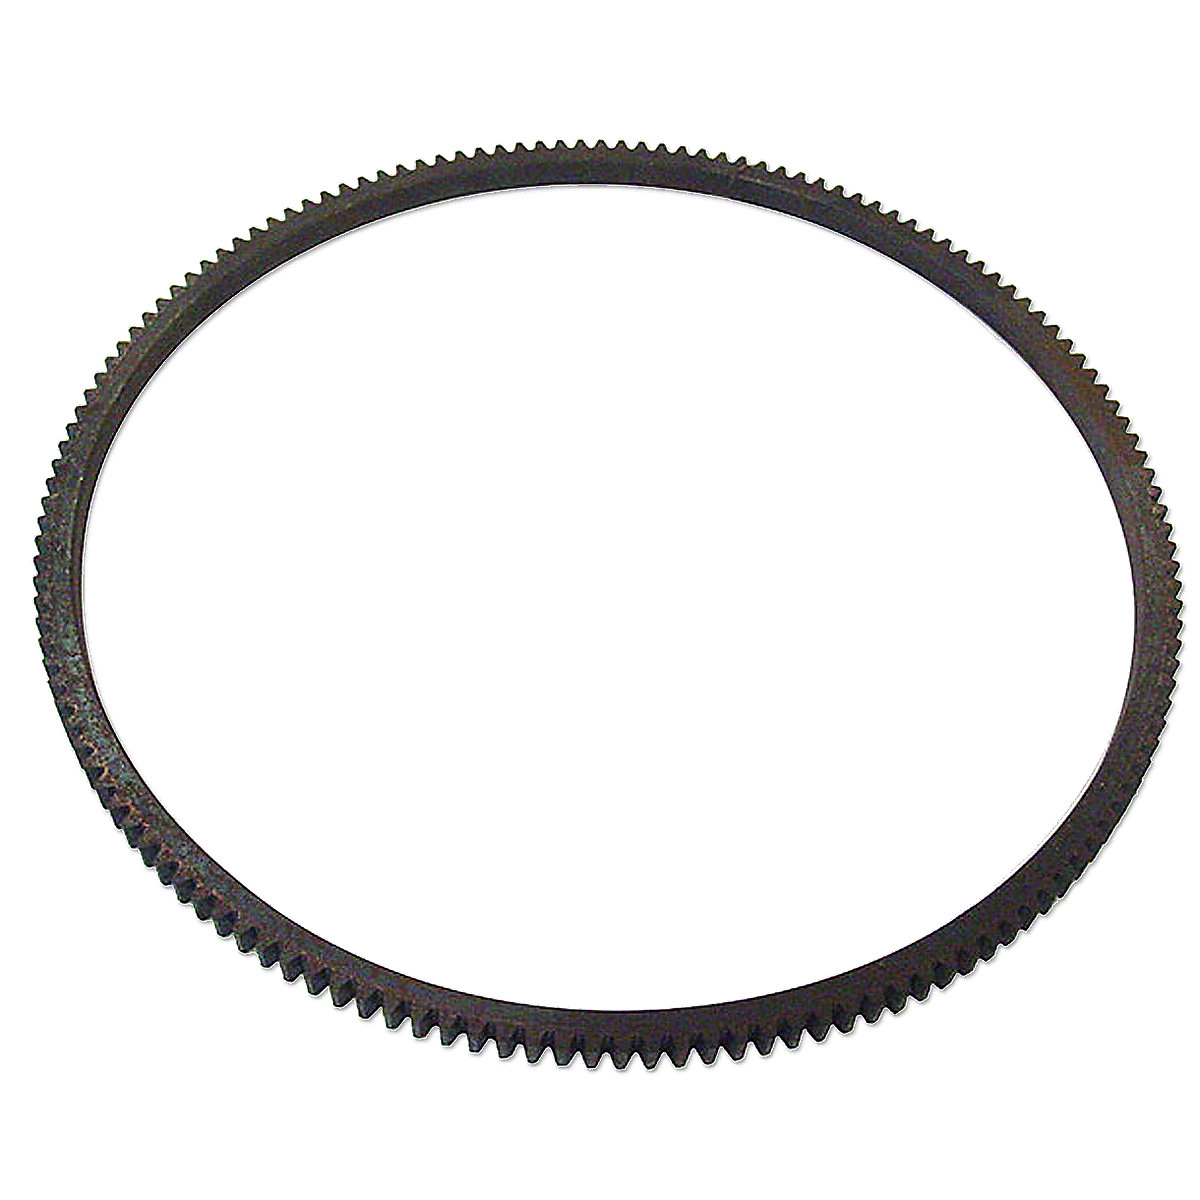 Flywheel Ring Gear For Massey Ferguson: TO35, TE20, TO20, TO30, 40, 50, Massey Harris: 50.